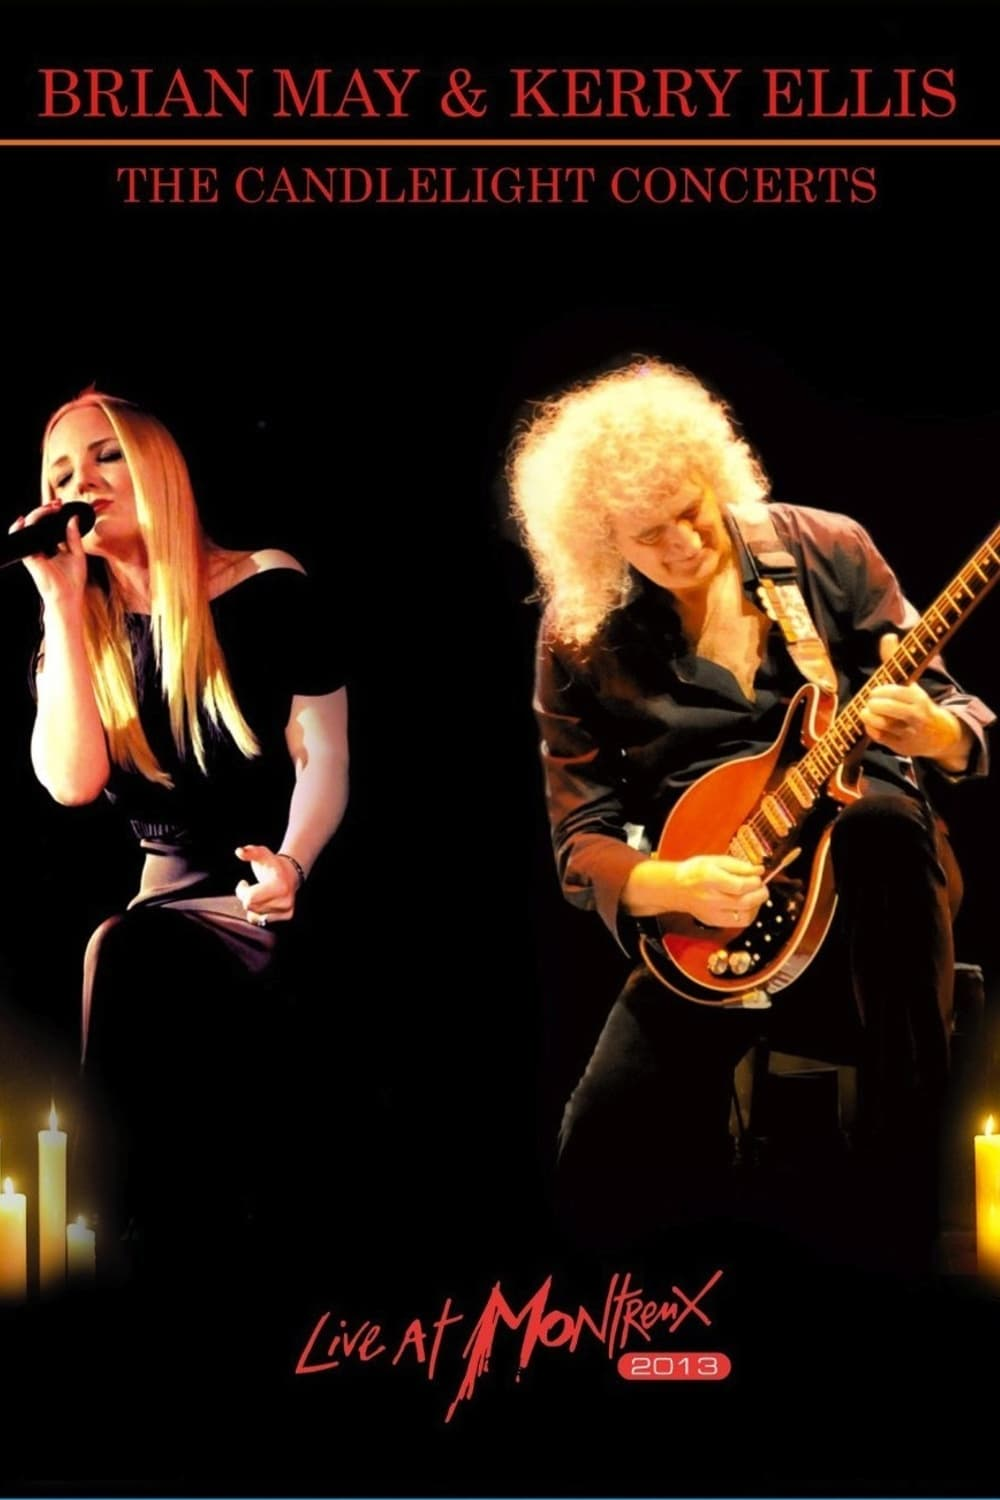 Brian May & Kerry Ellis - The Candlelight Concerts Live at Montreux (2014)